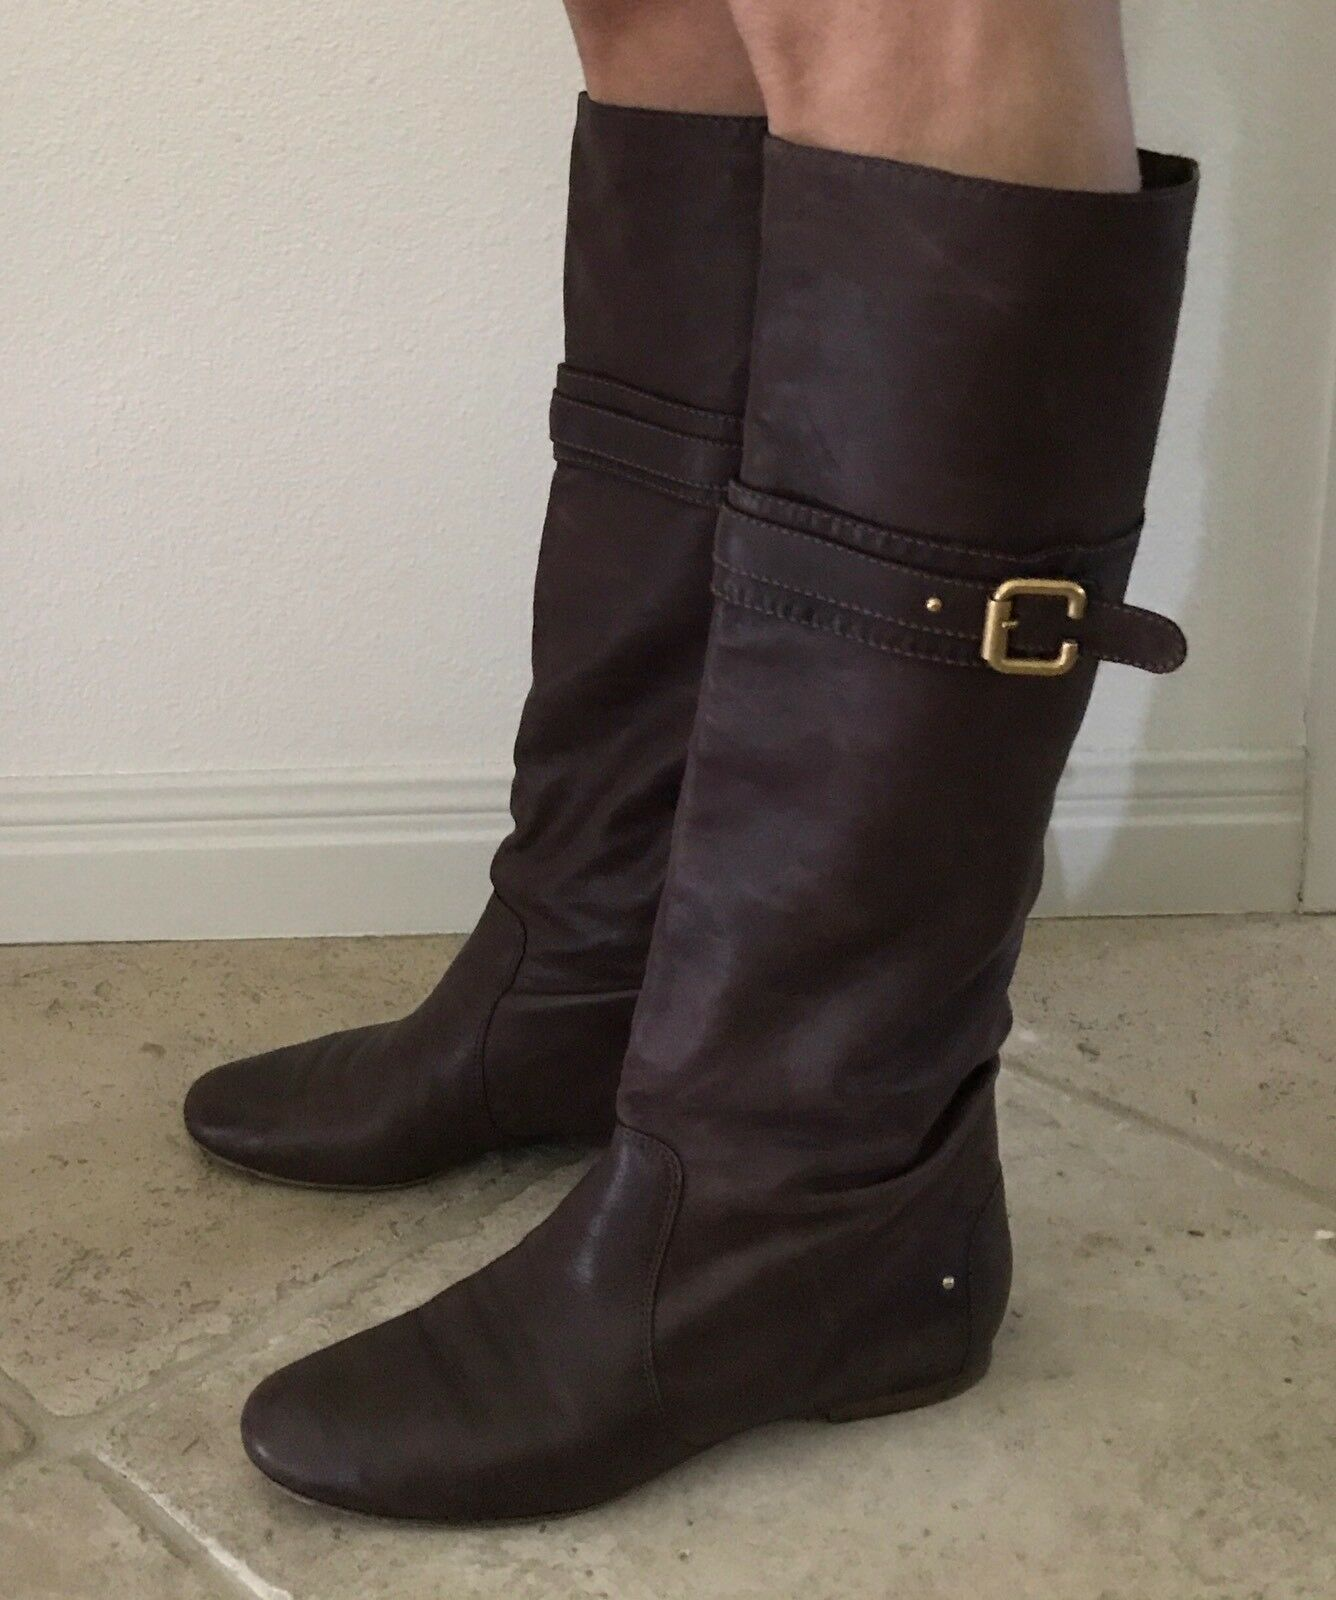 Chloe Boots Knee High Chocolate Brown Size 40